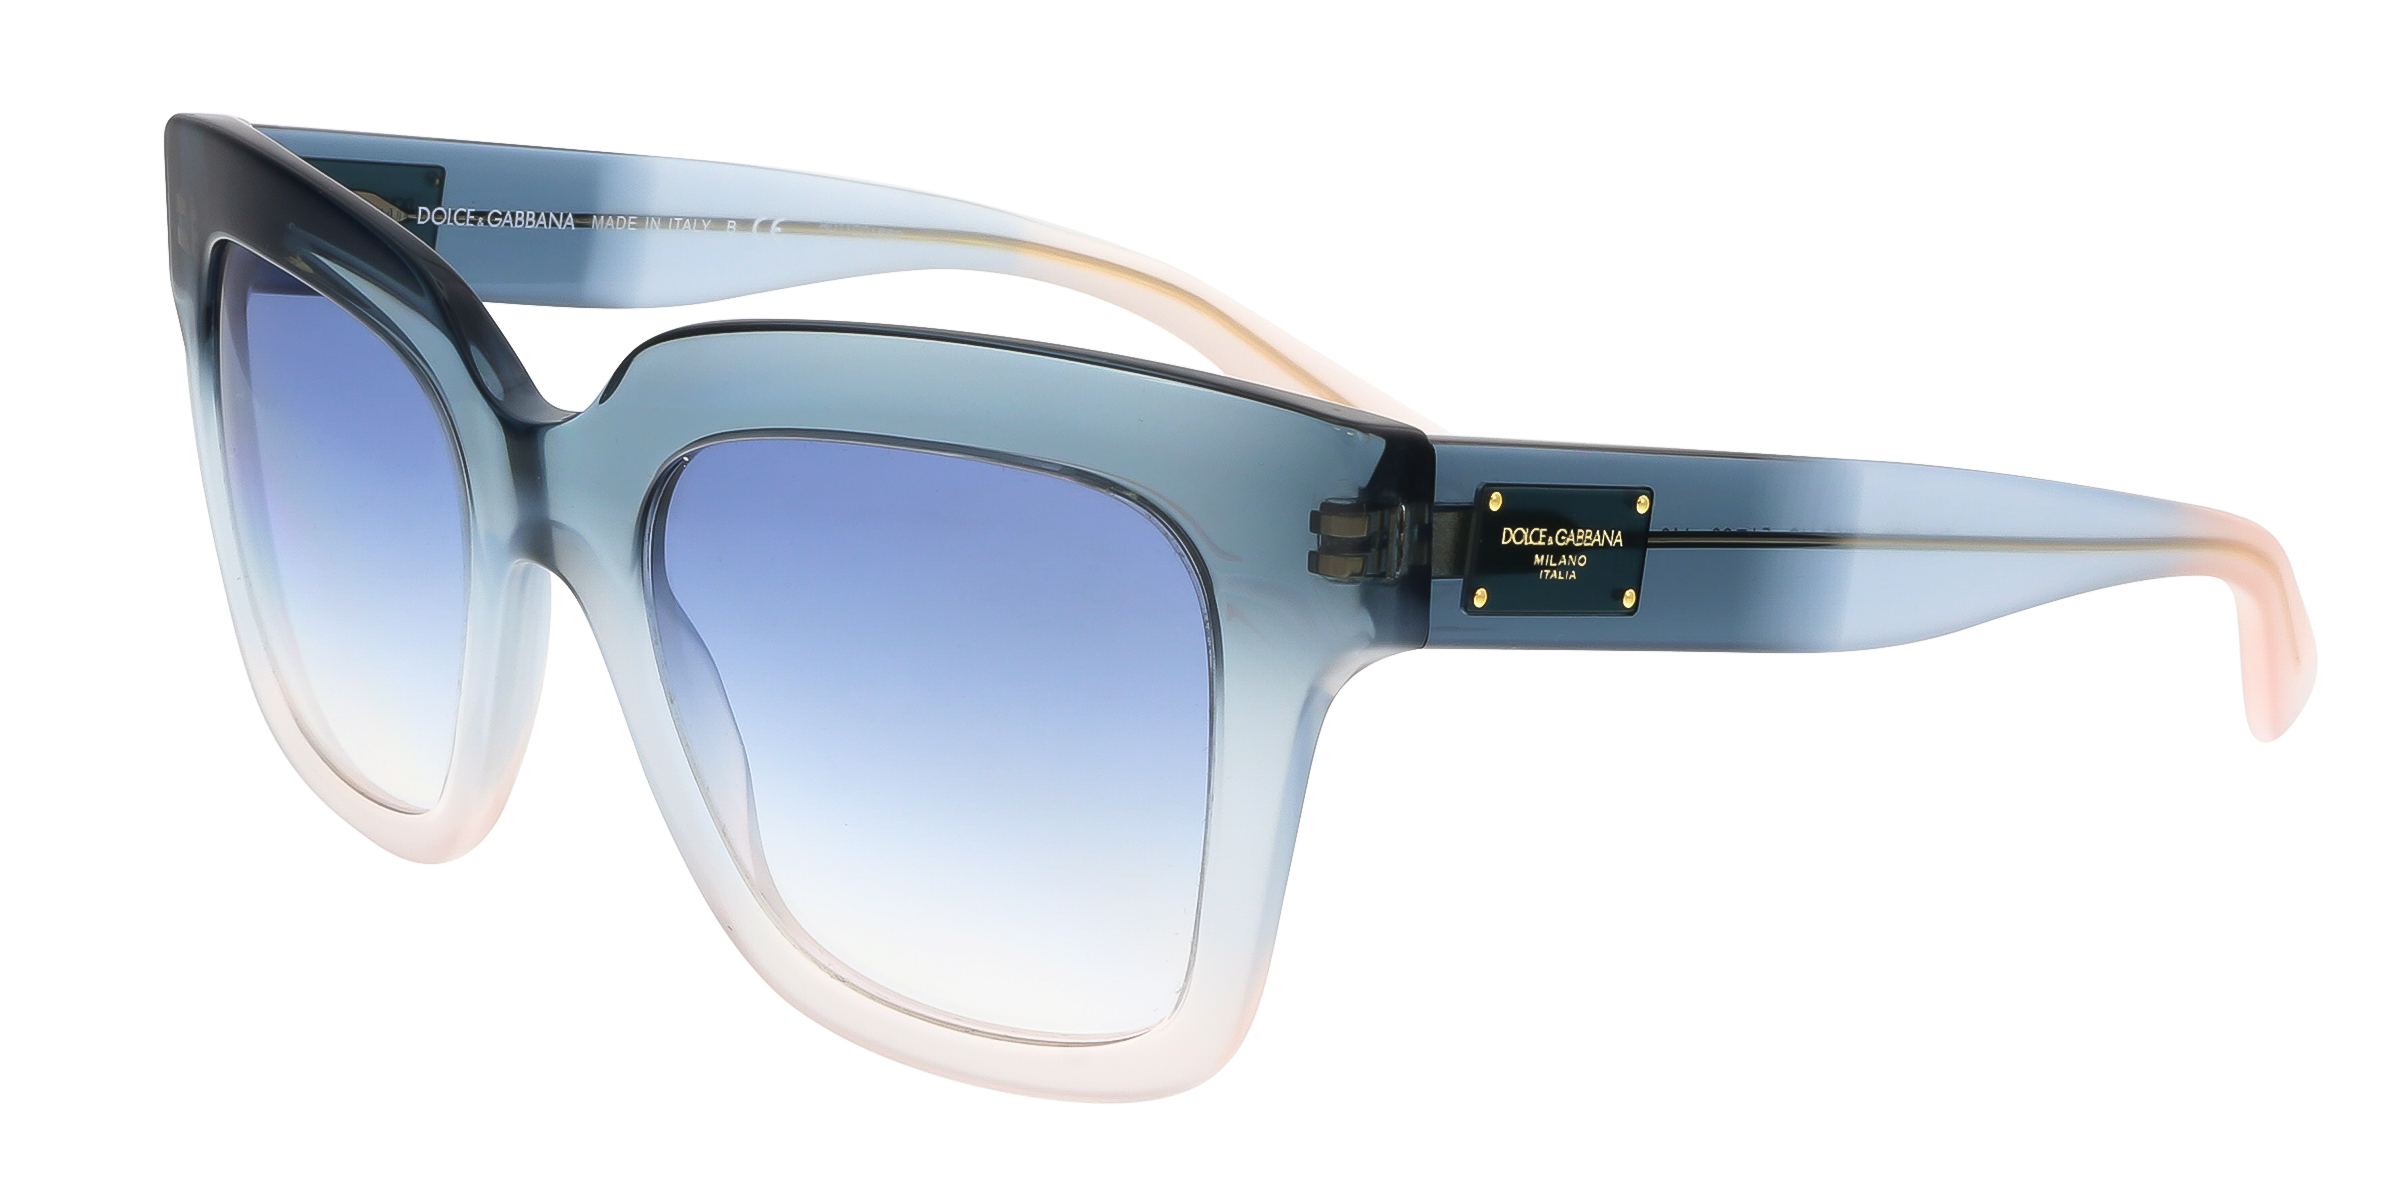 Dolce & Gabbana DG4286 305919 Blue Gradient Square Sunglasses